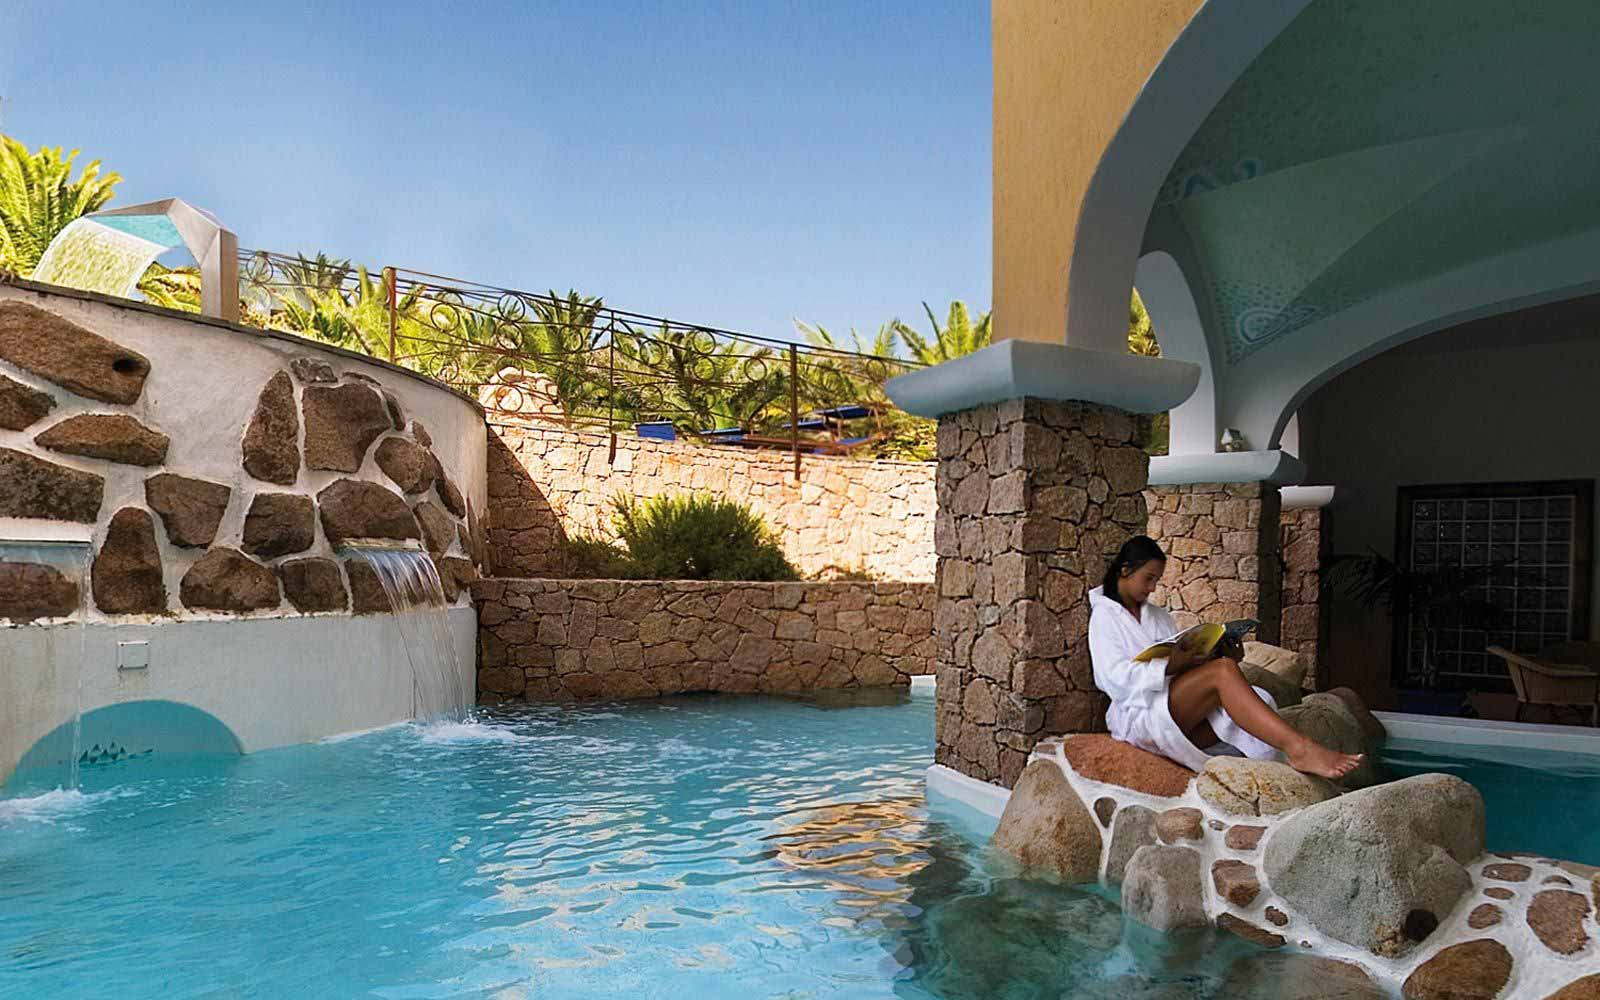 Wellness at Hotel Relax Torreruja Thalasso & Spa